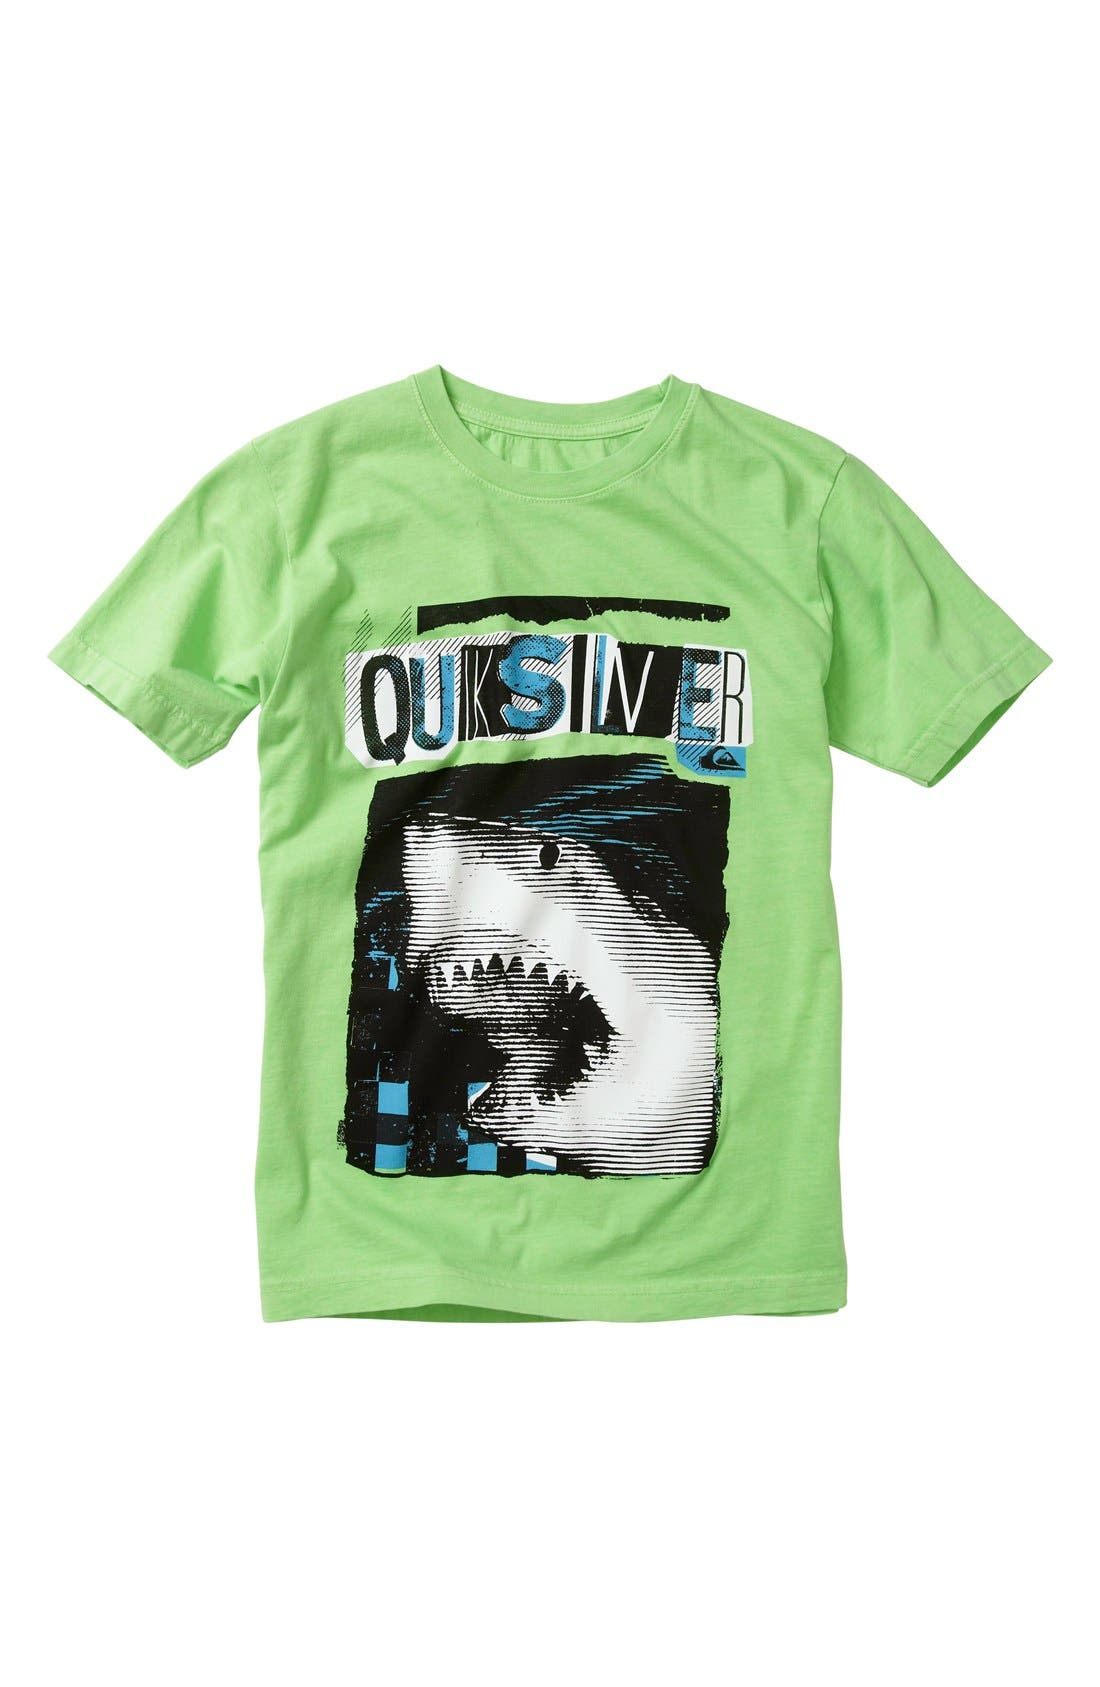 Main Image - Quiksilver 'Bitten' Short Sleeve T-Shirt (Little Boys)